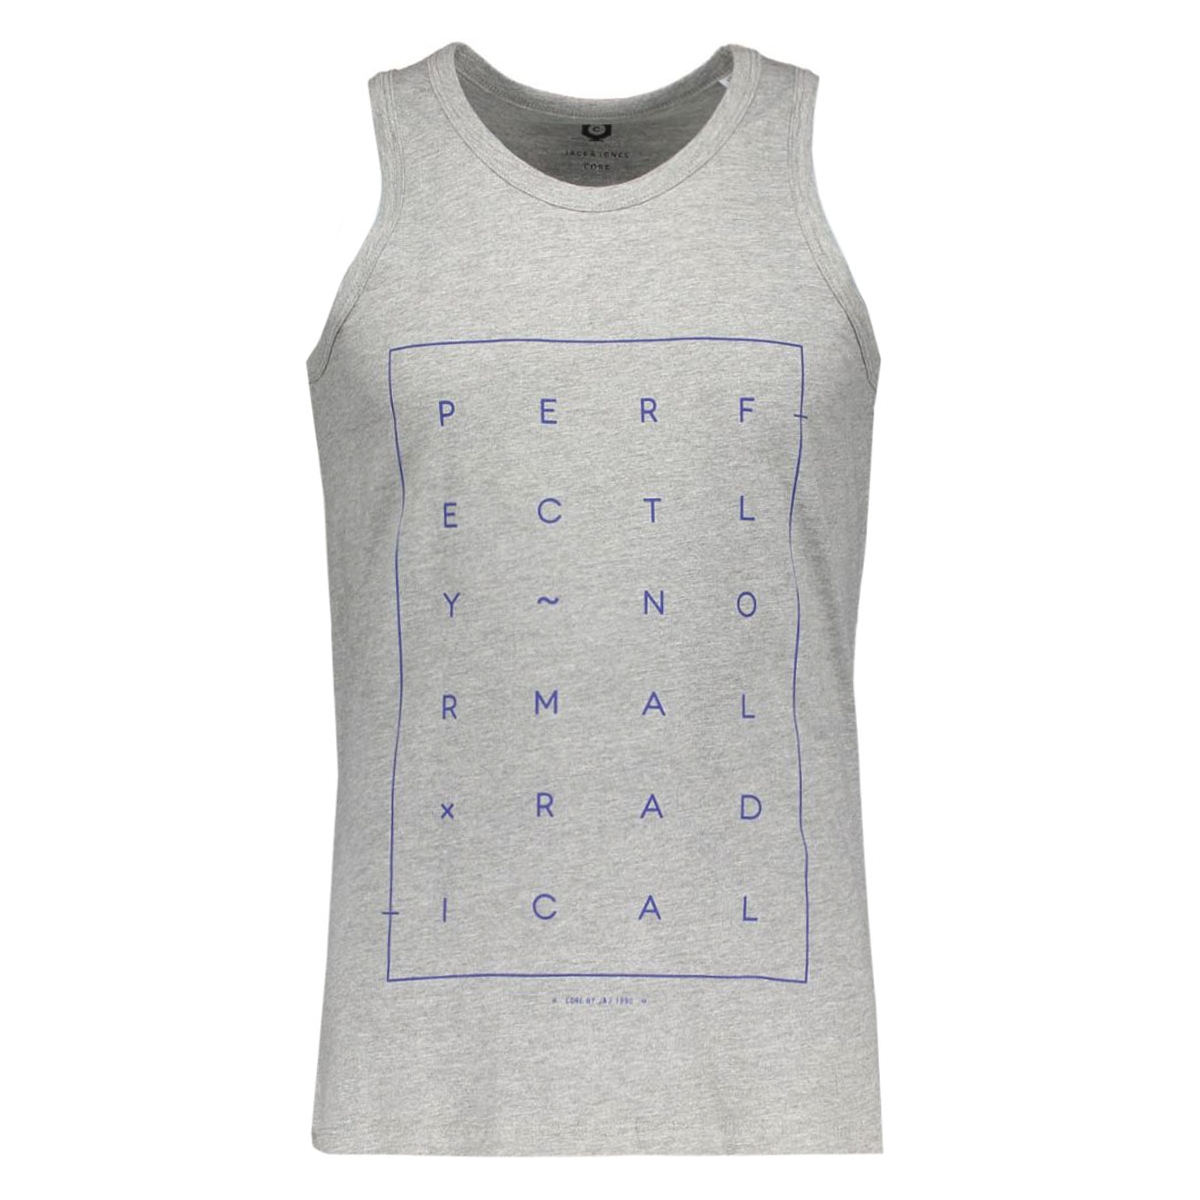 jcoair tee tank top 12107339 jack & jones t-shirt mela/reg tight